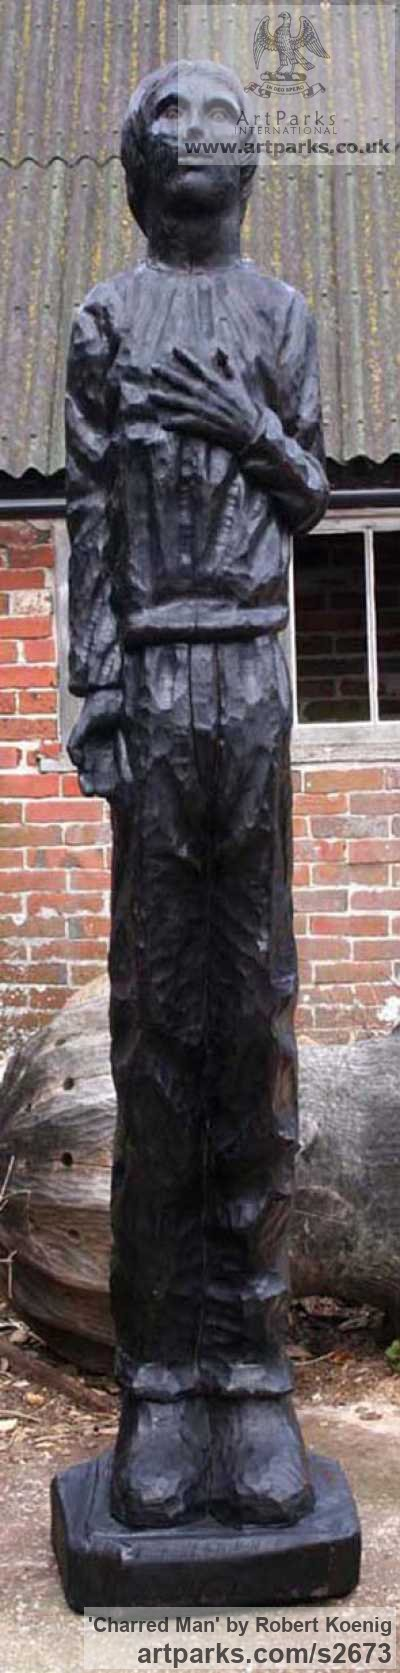 Carved wood Garden Or Yard / Outside and Outdoor sculpture by sculptor Robert Koenig titled: 'Charred Man' - Artwork View 2